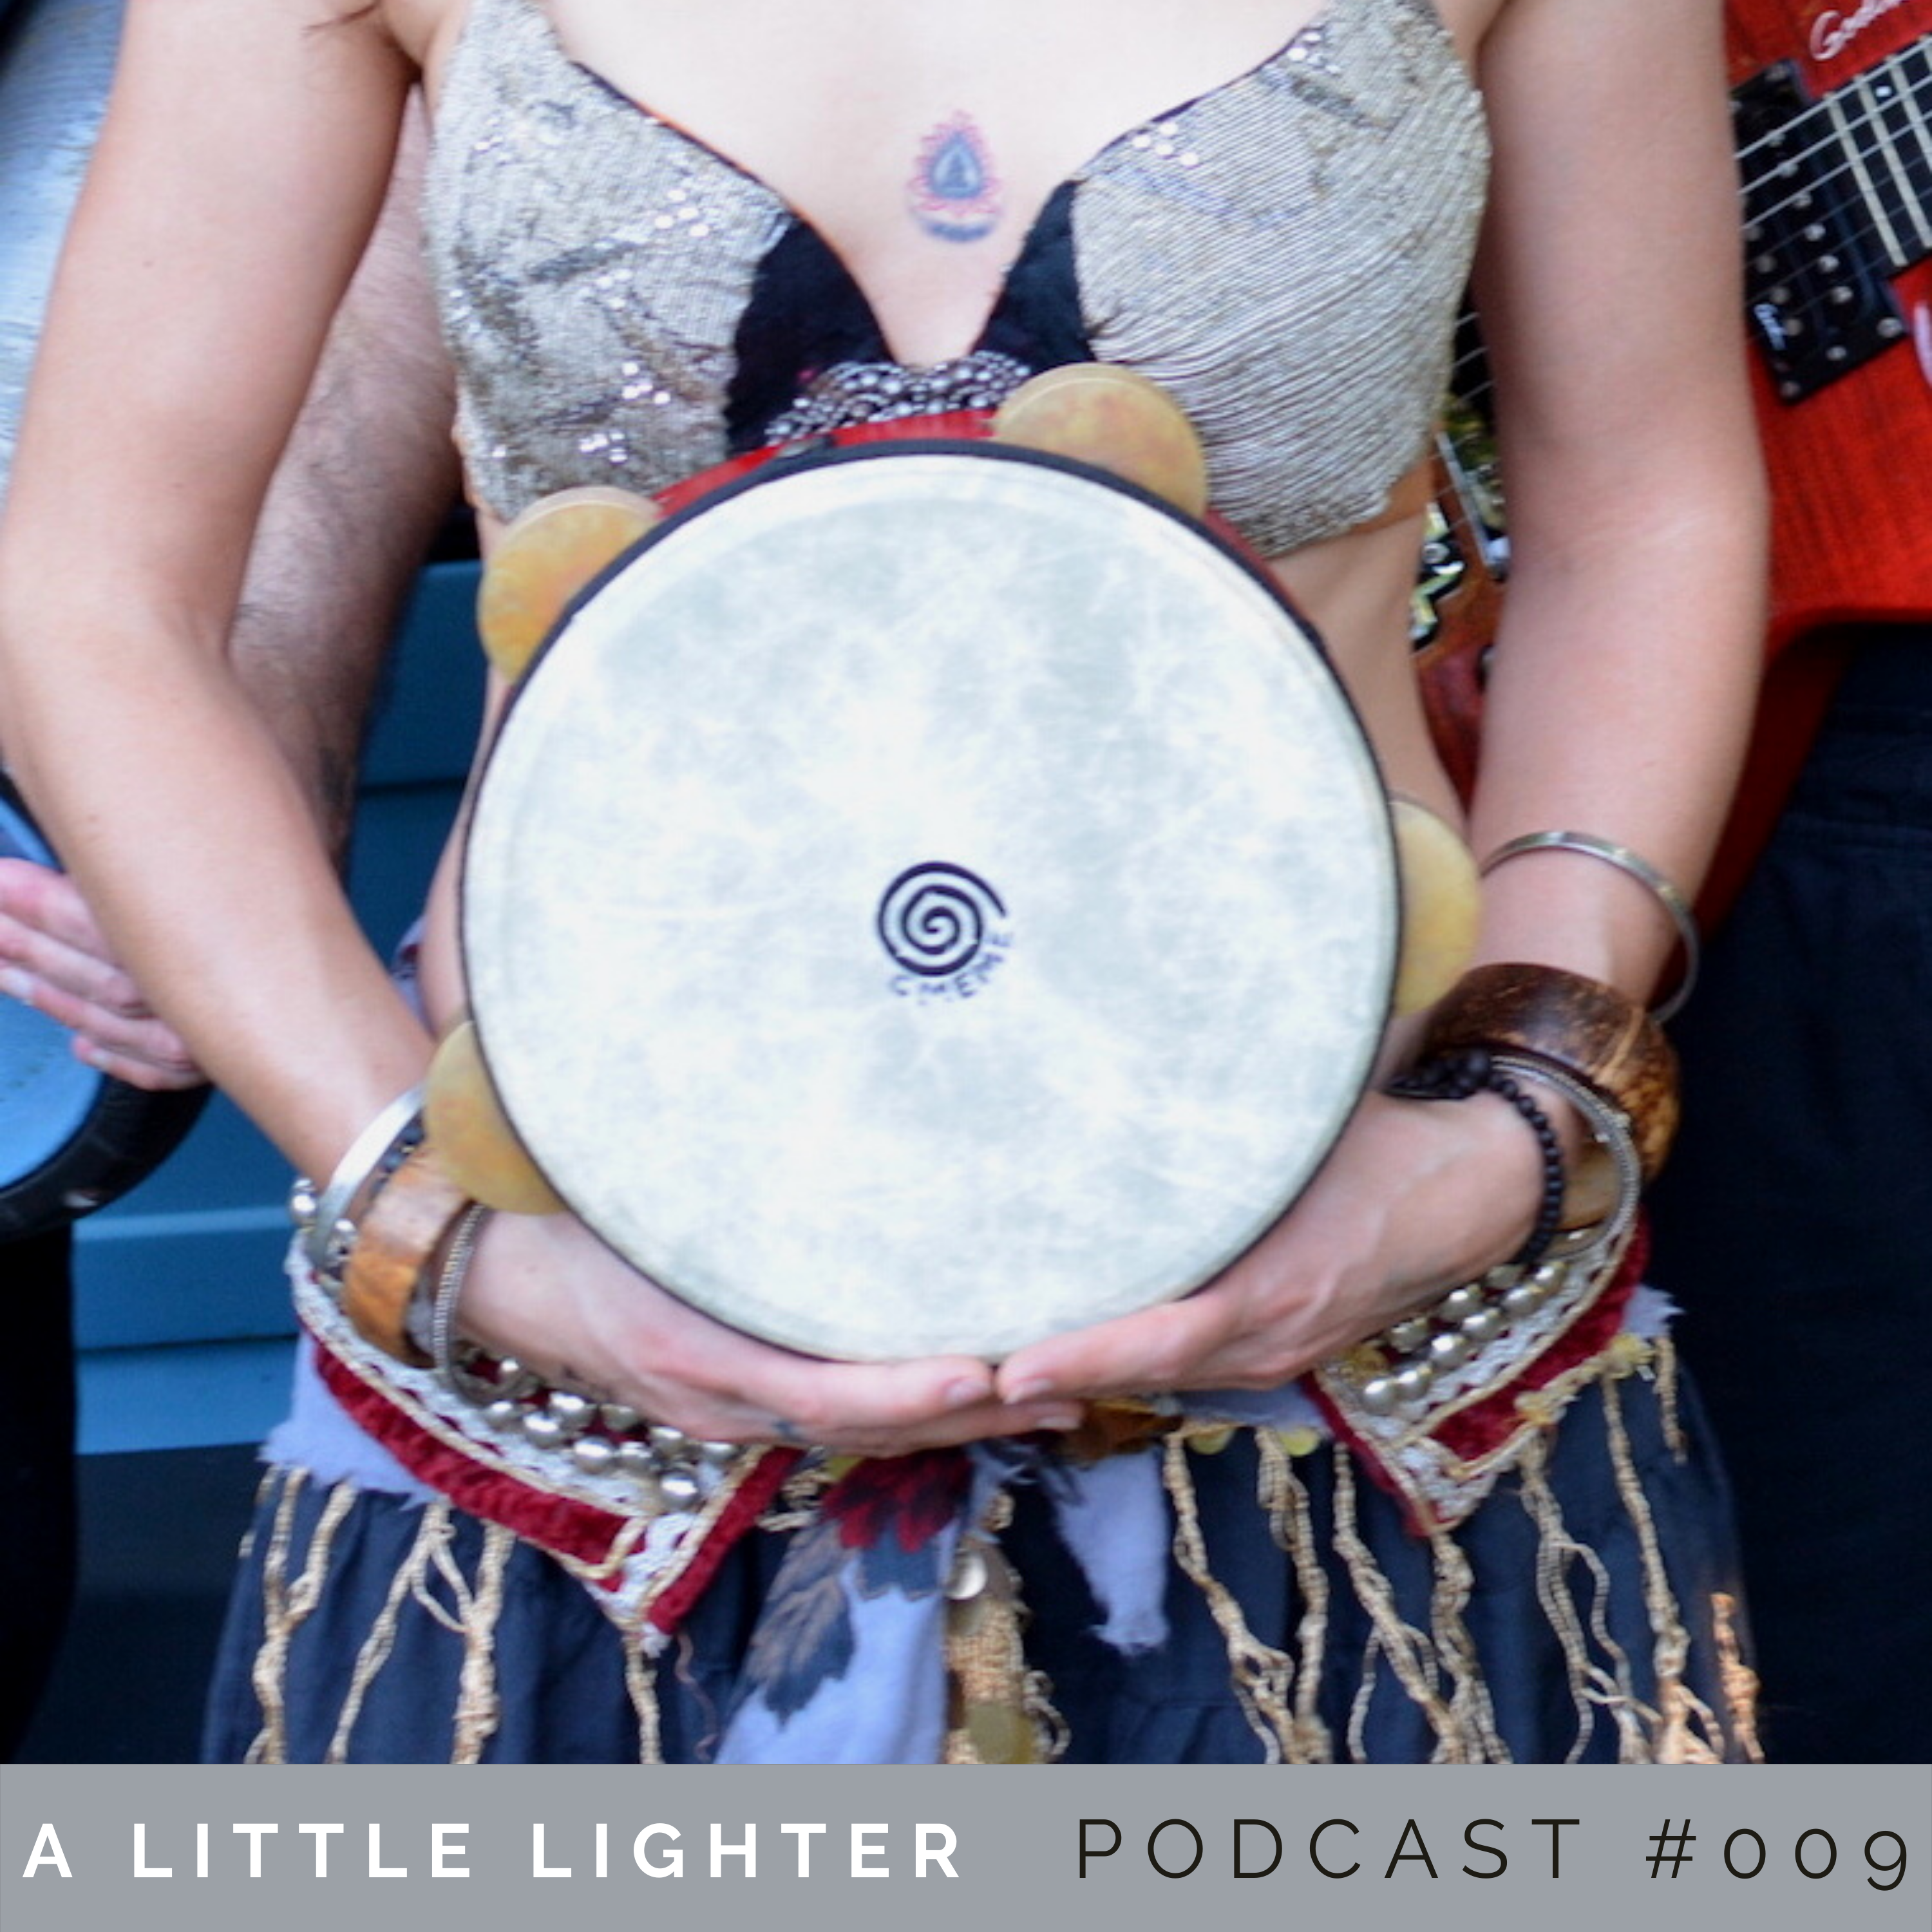 Belly Dance Podcast lamma bada and drum feature the riq raqs